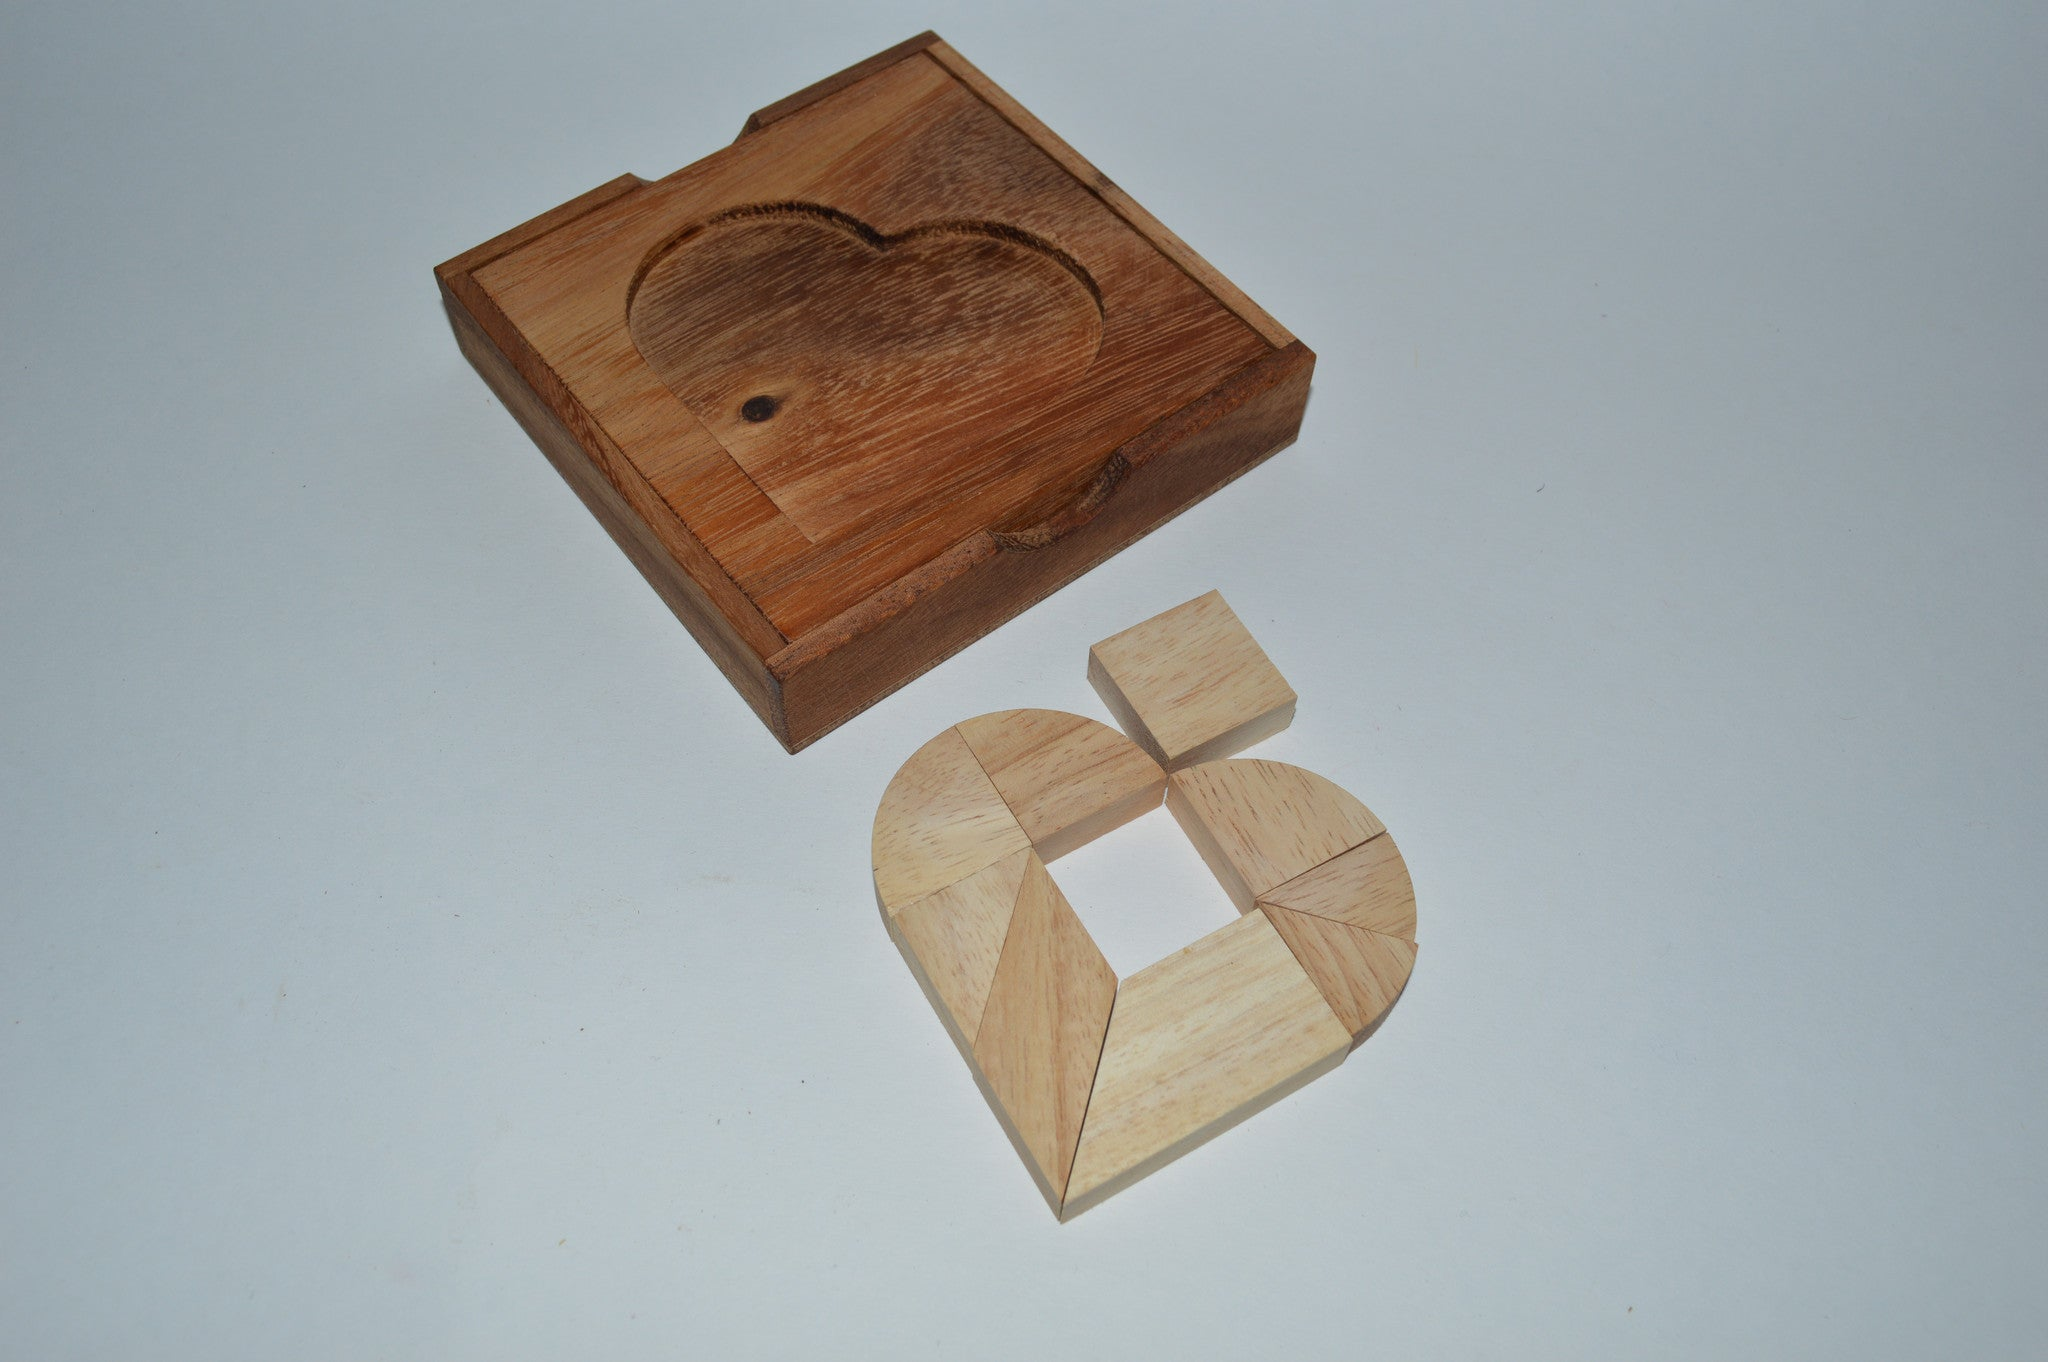 Broken Heart - Wooden Tangram Puzzle - Solve It! Think Out of the Box